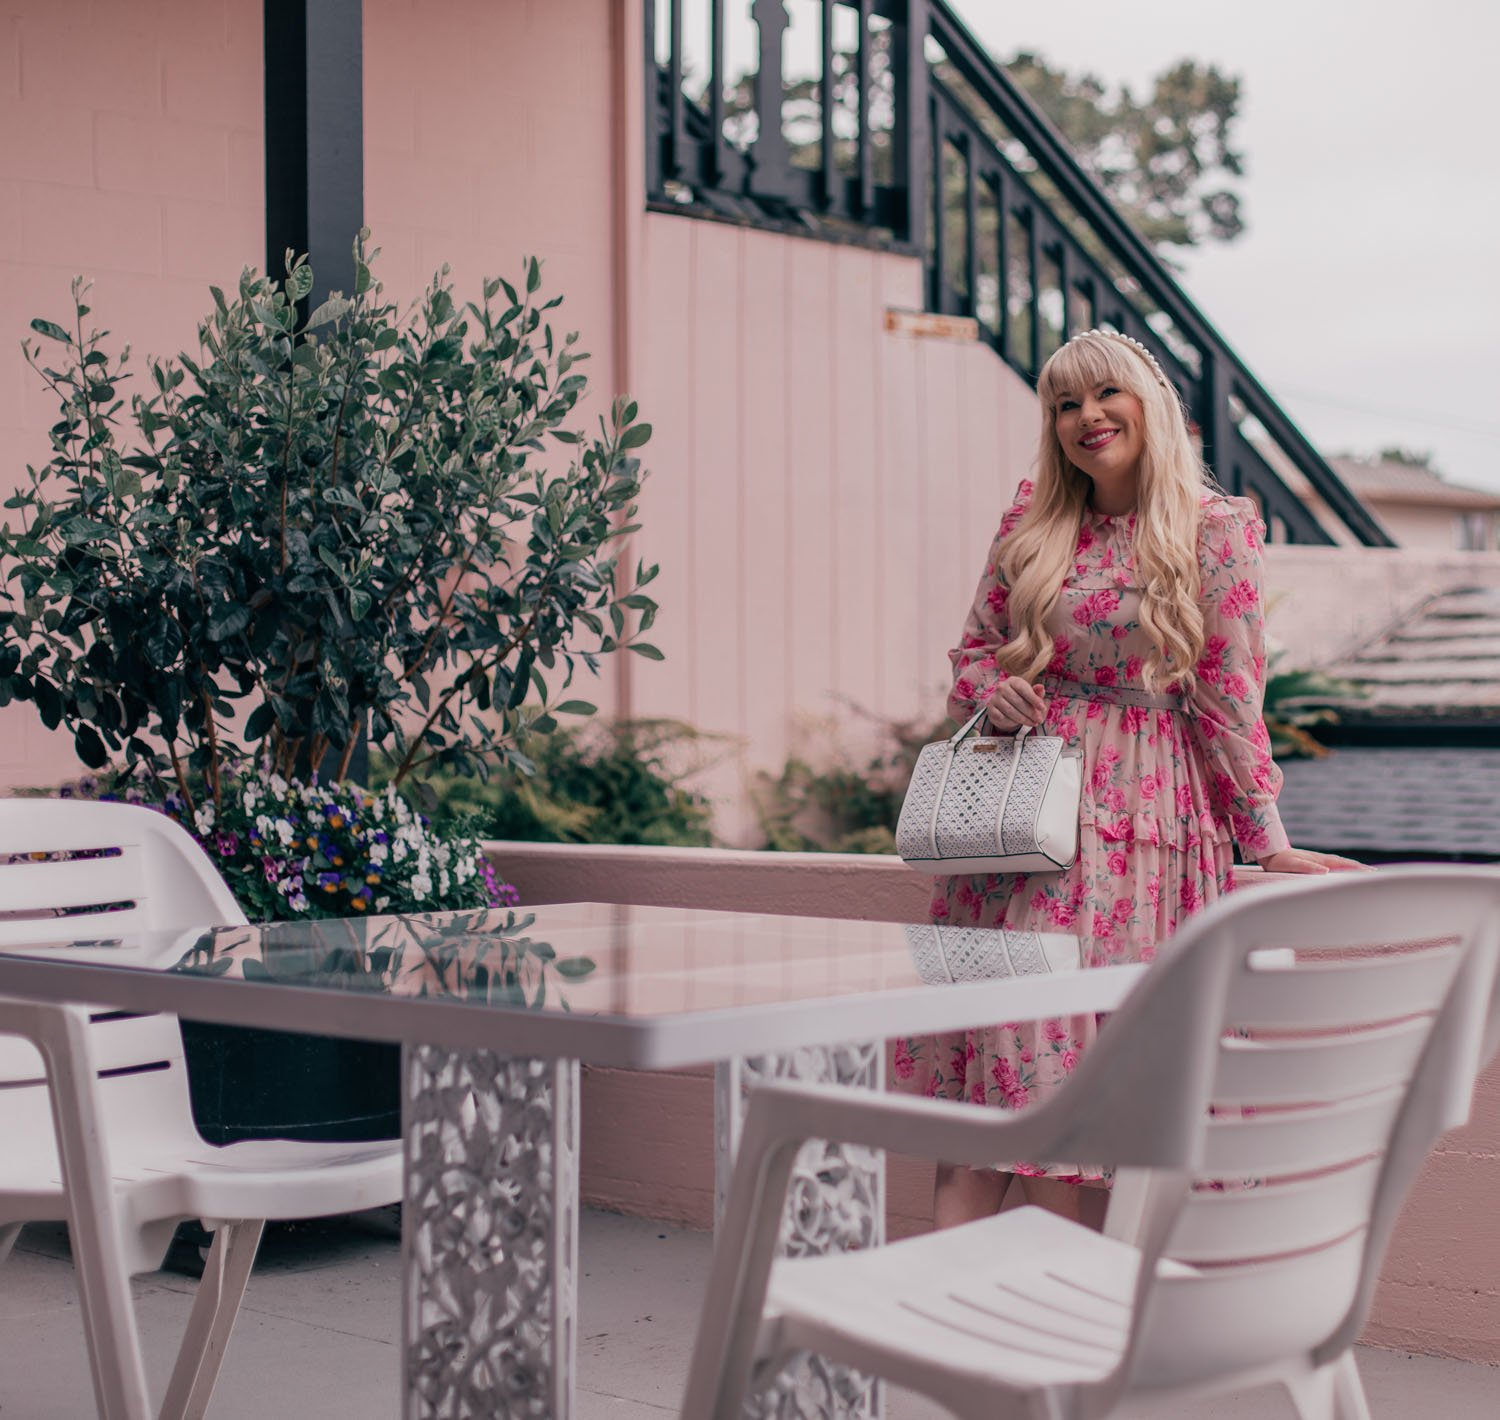 Feminine Fashion Blogger Elizabeth Hugen of Lizzie in Lace shares how to wear the statement collar trend along with a summer outfit including a pink floral chicwish dress